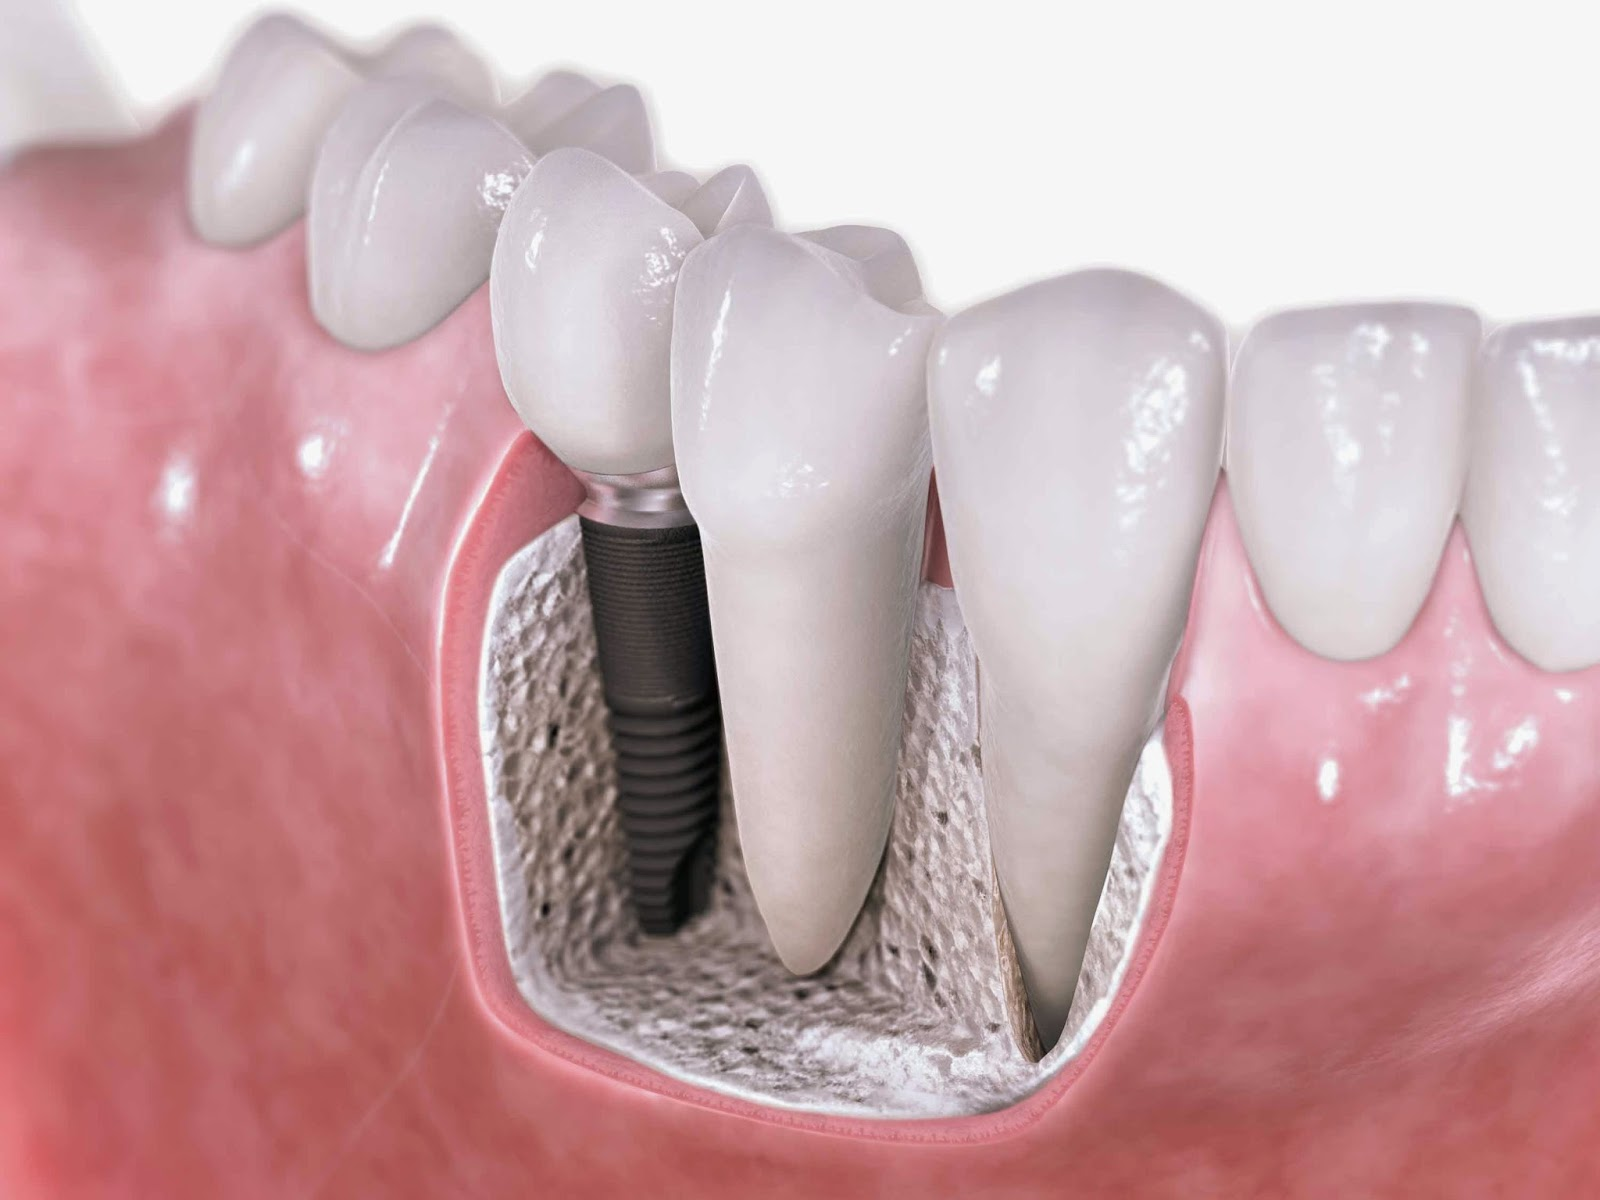 http://dentalimplantsindia.org/treatments-offered/dental-implants/